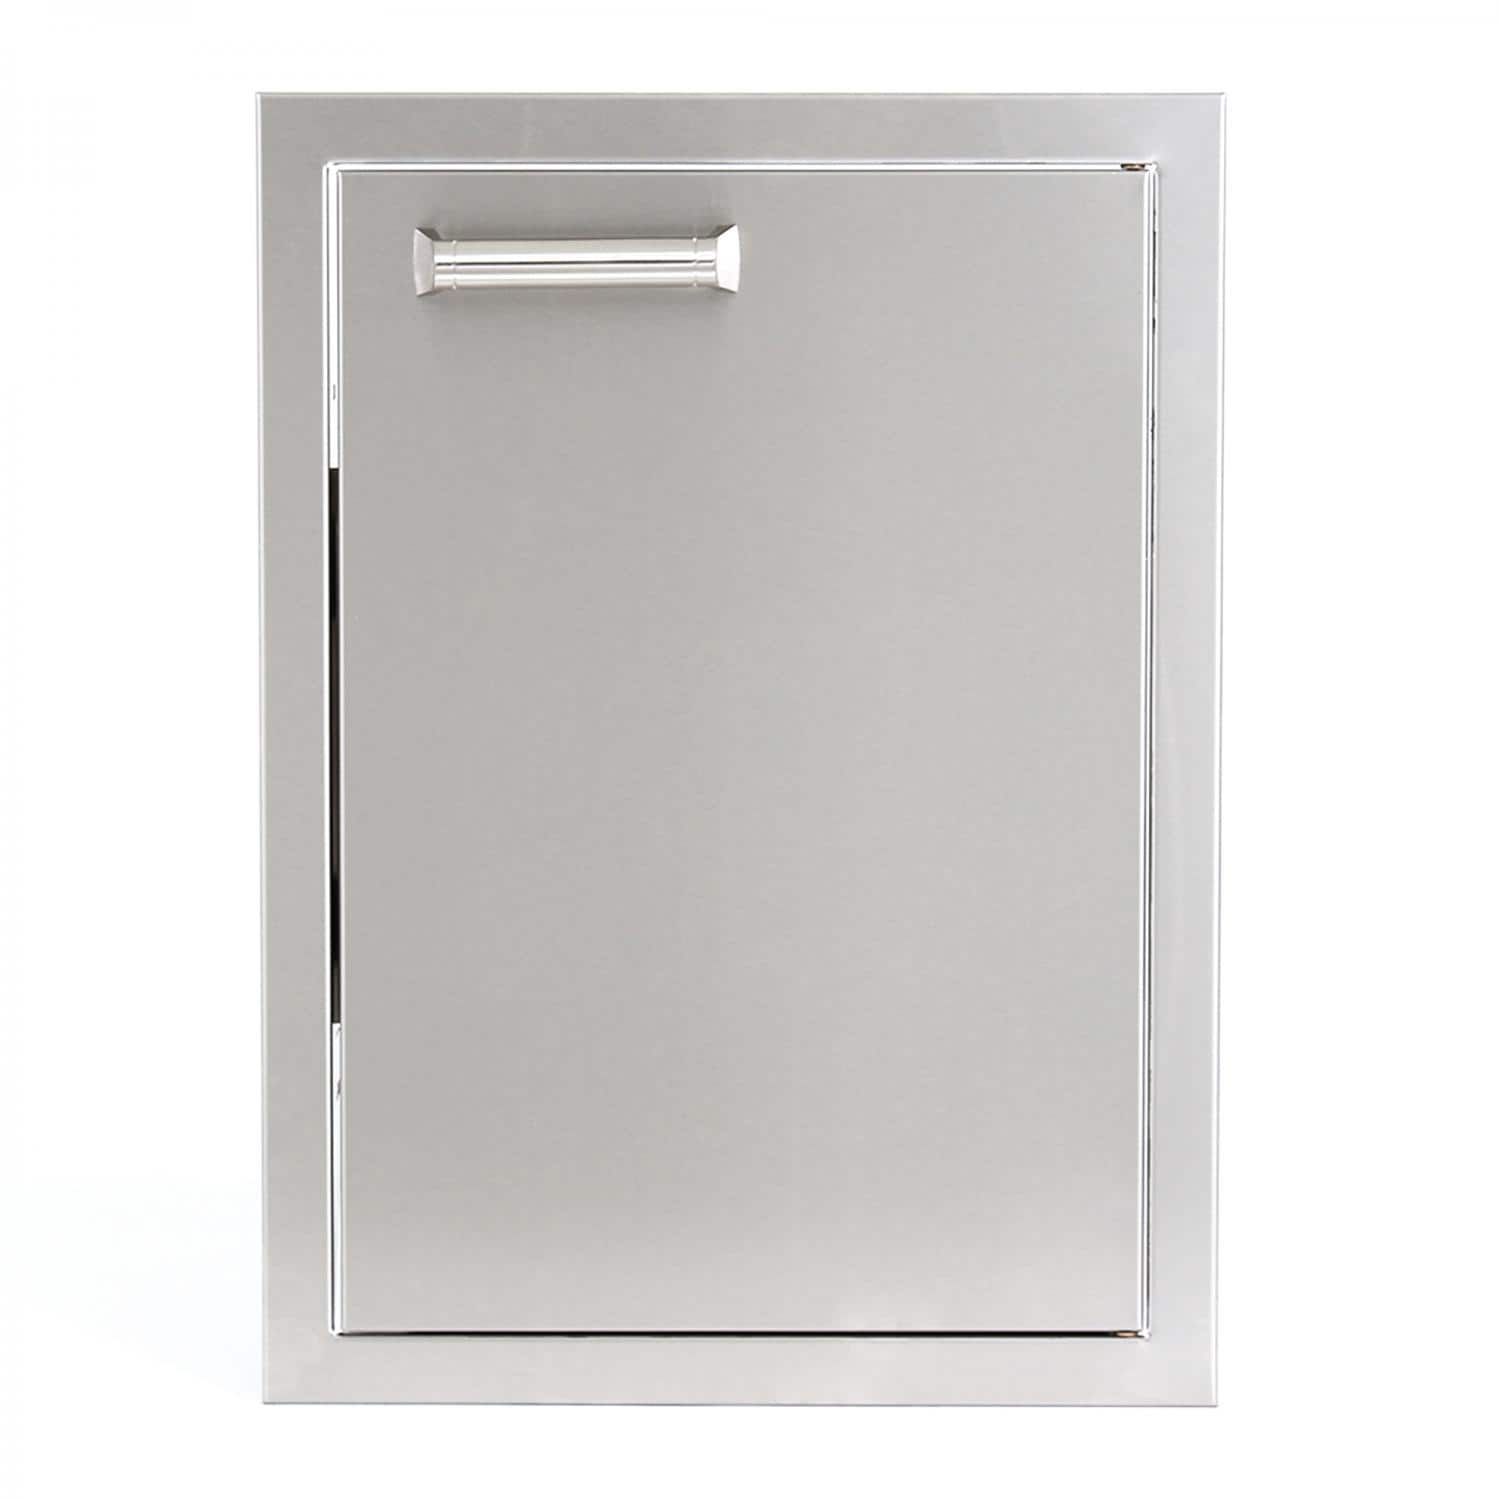 BBQGuys  Sonoma Series 14 inch Stainless Steel Right-Hinged Single Access Door - Vertical - BBQ-350H-14X20-V